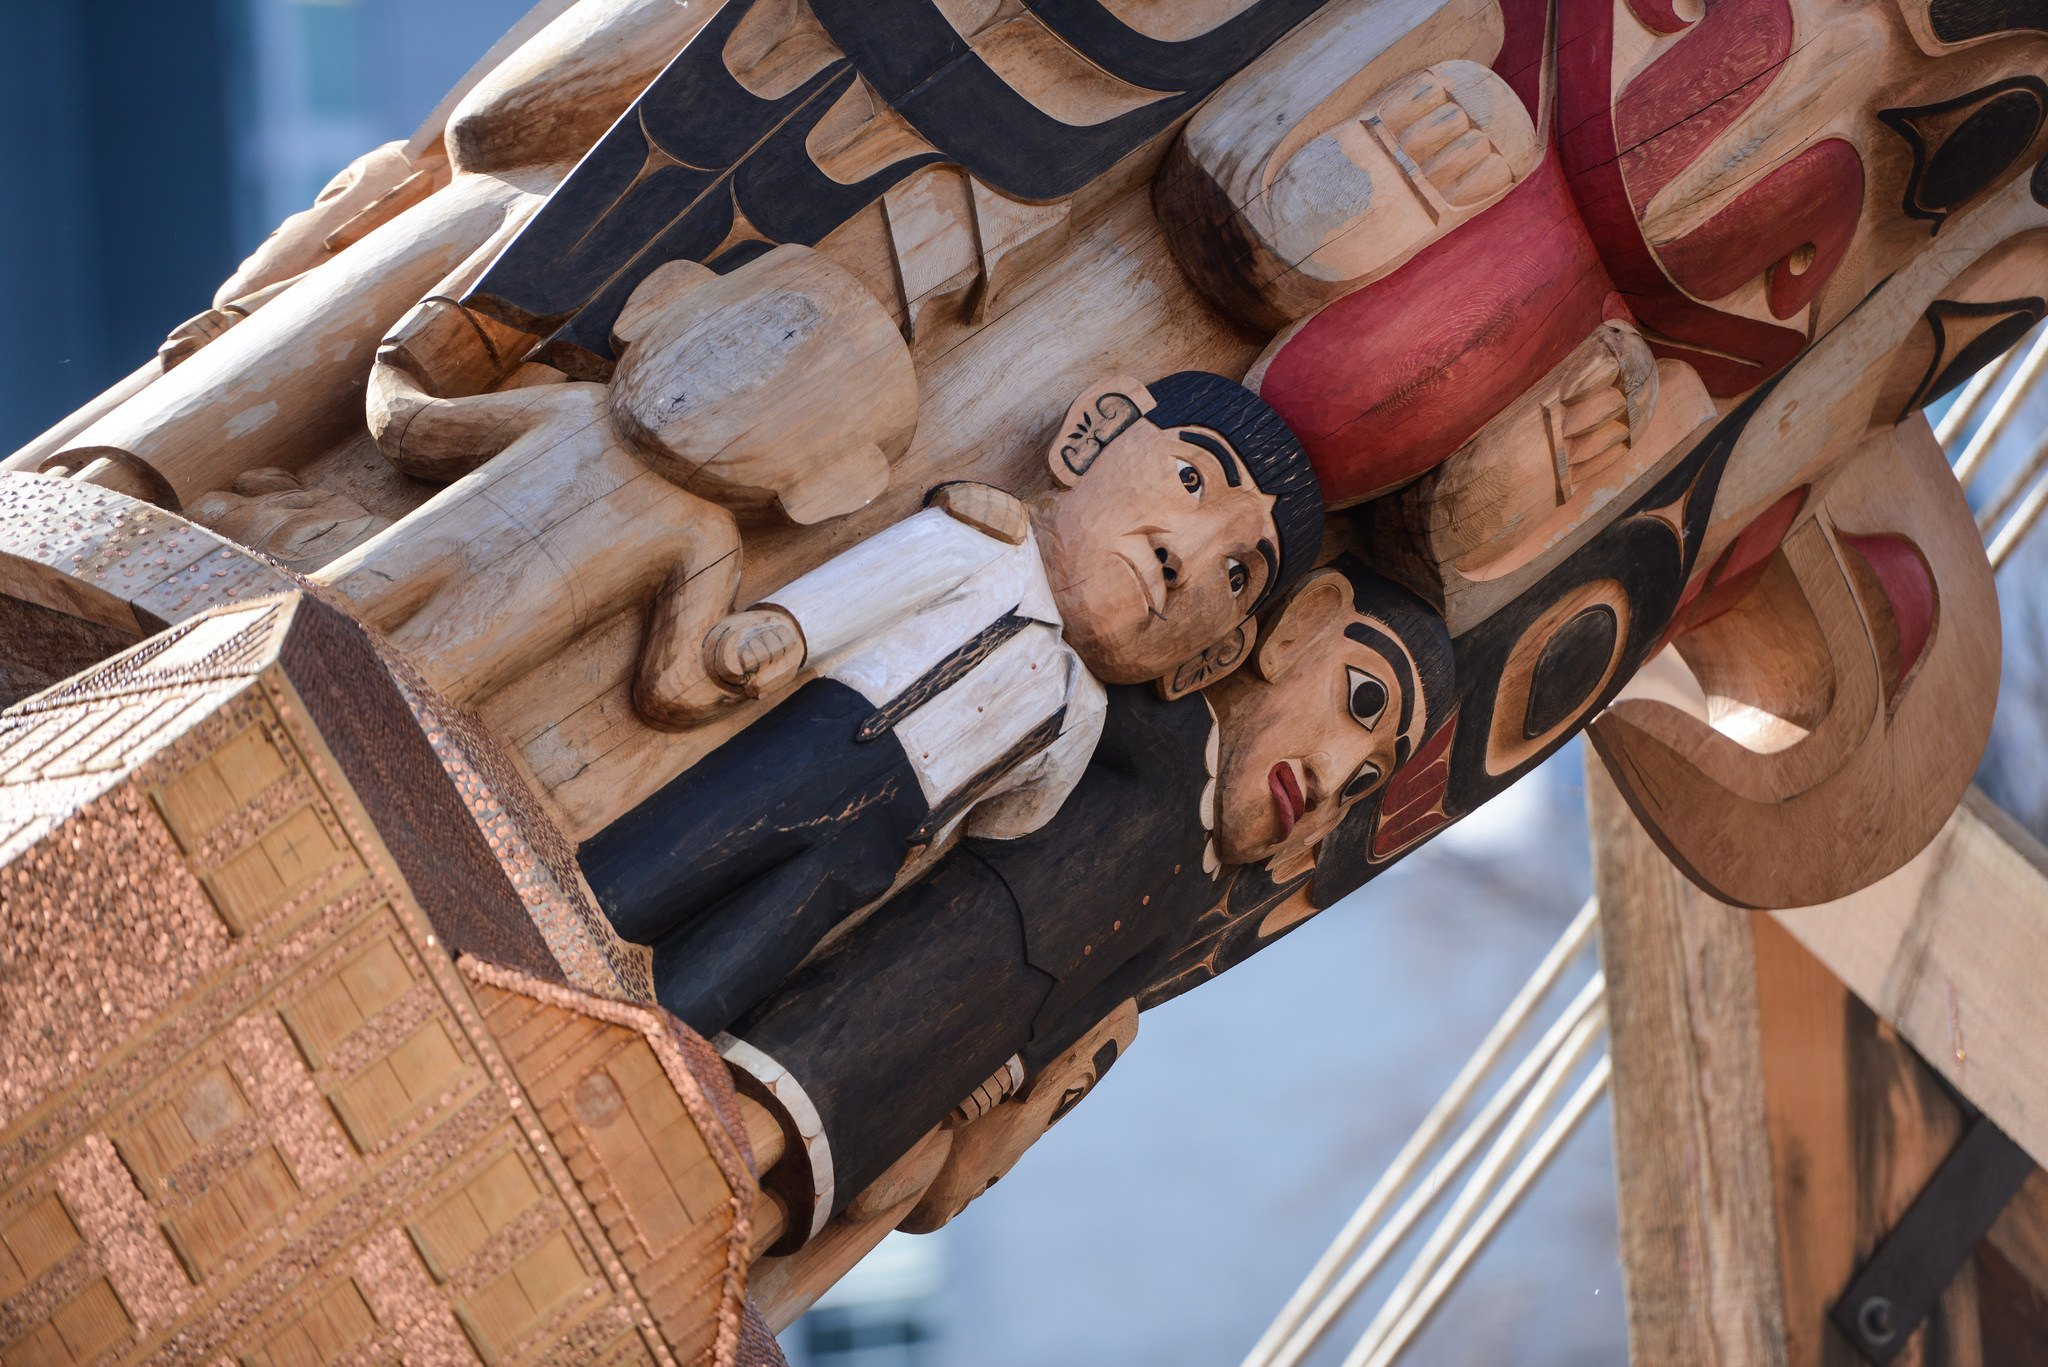 A depiction of indigenous people holding hands over a residential school on the new Reconciliation Pole at UBC (Paul Joseph/UBC)